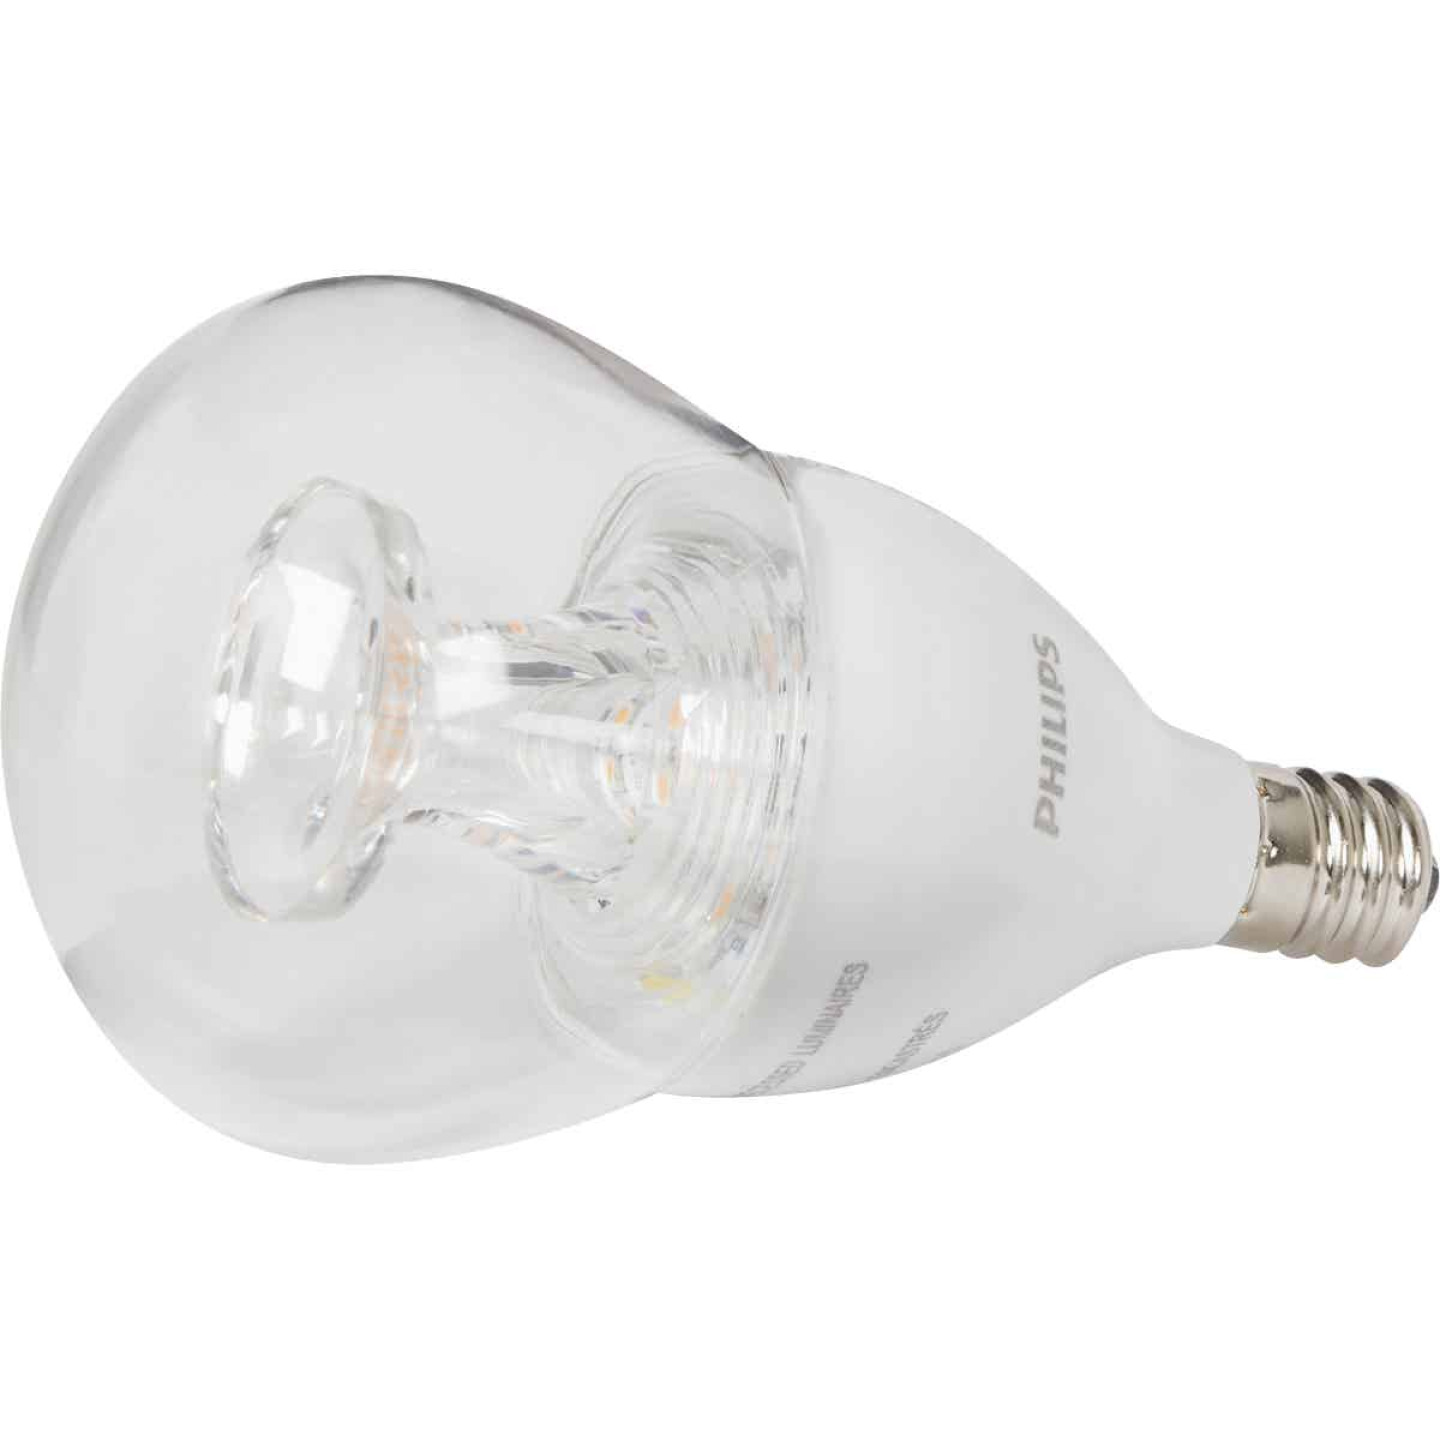 Philips Warm Glow 40W Equivalent Soft White A15 Candelabra Dimmable LED Light Bulb Image 3